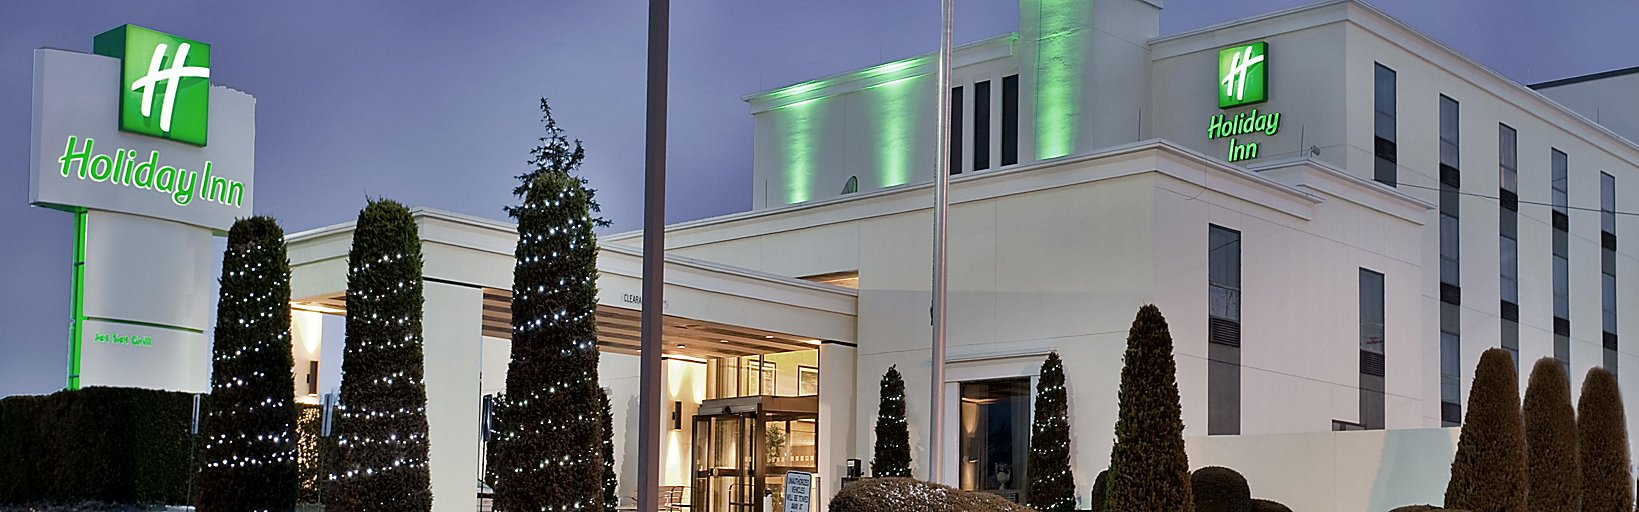 Holiday Inn St Louis Airport Hotel By Ihg